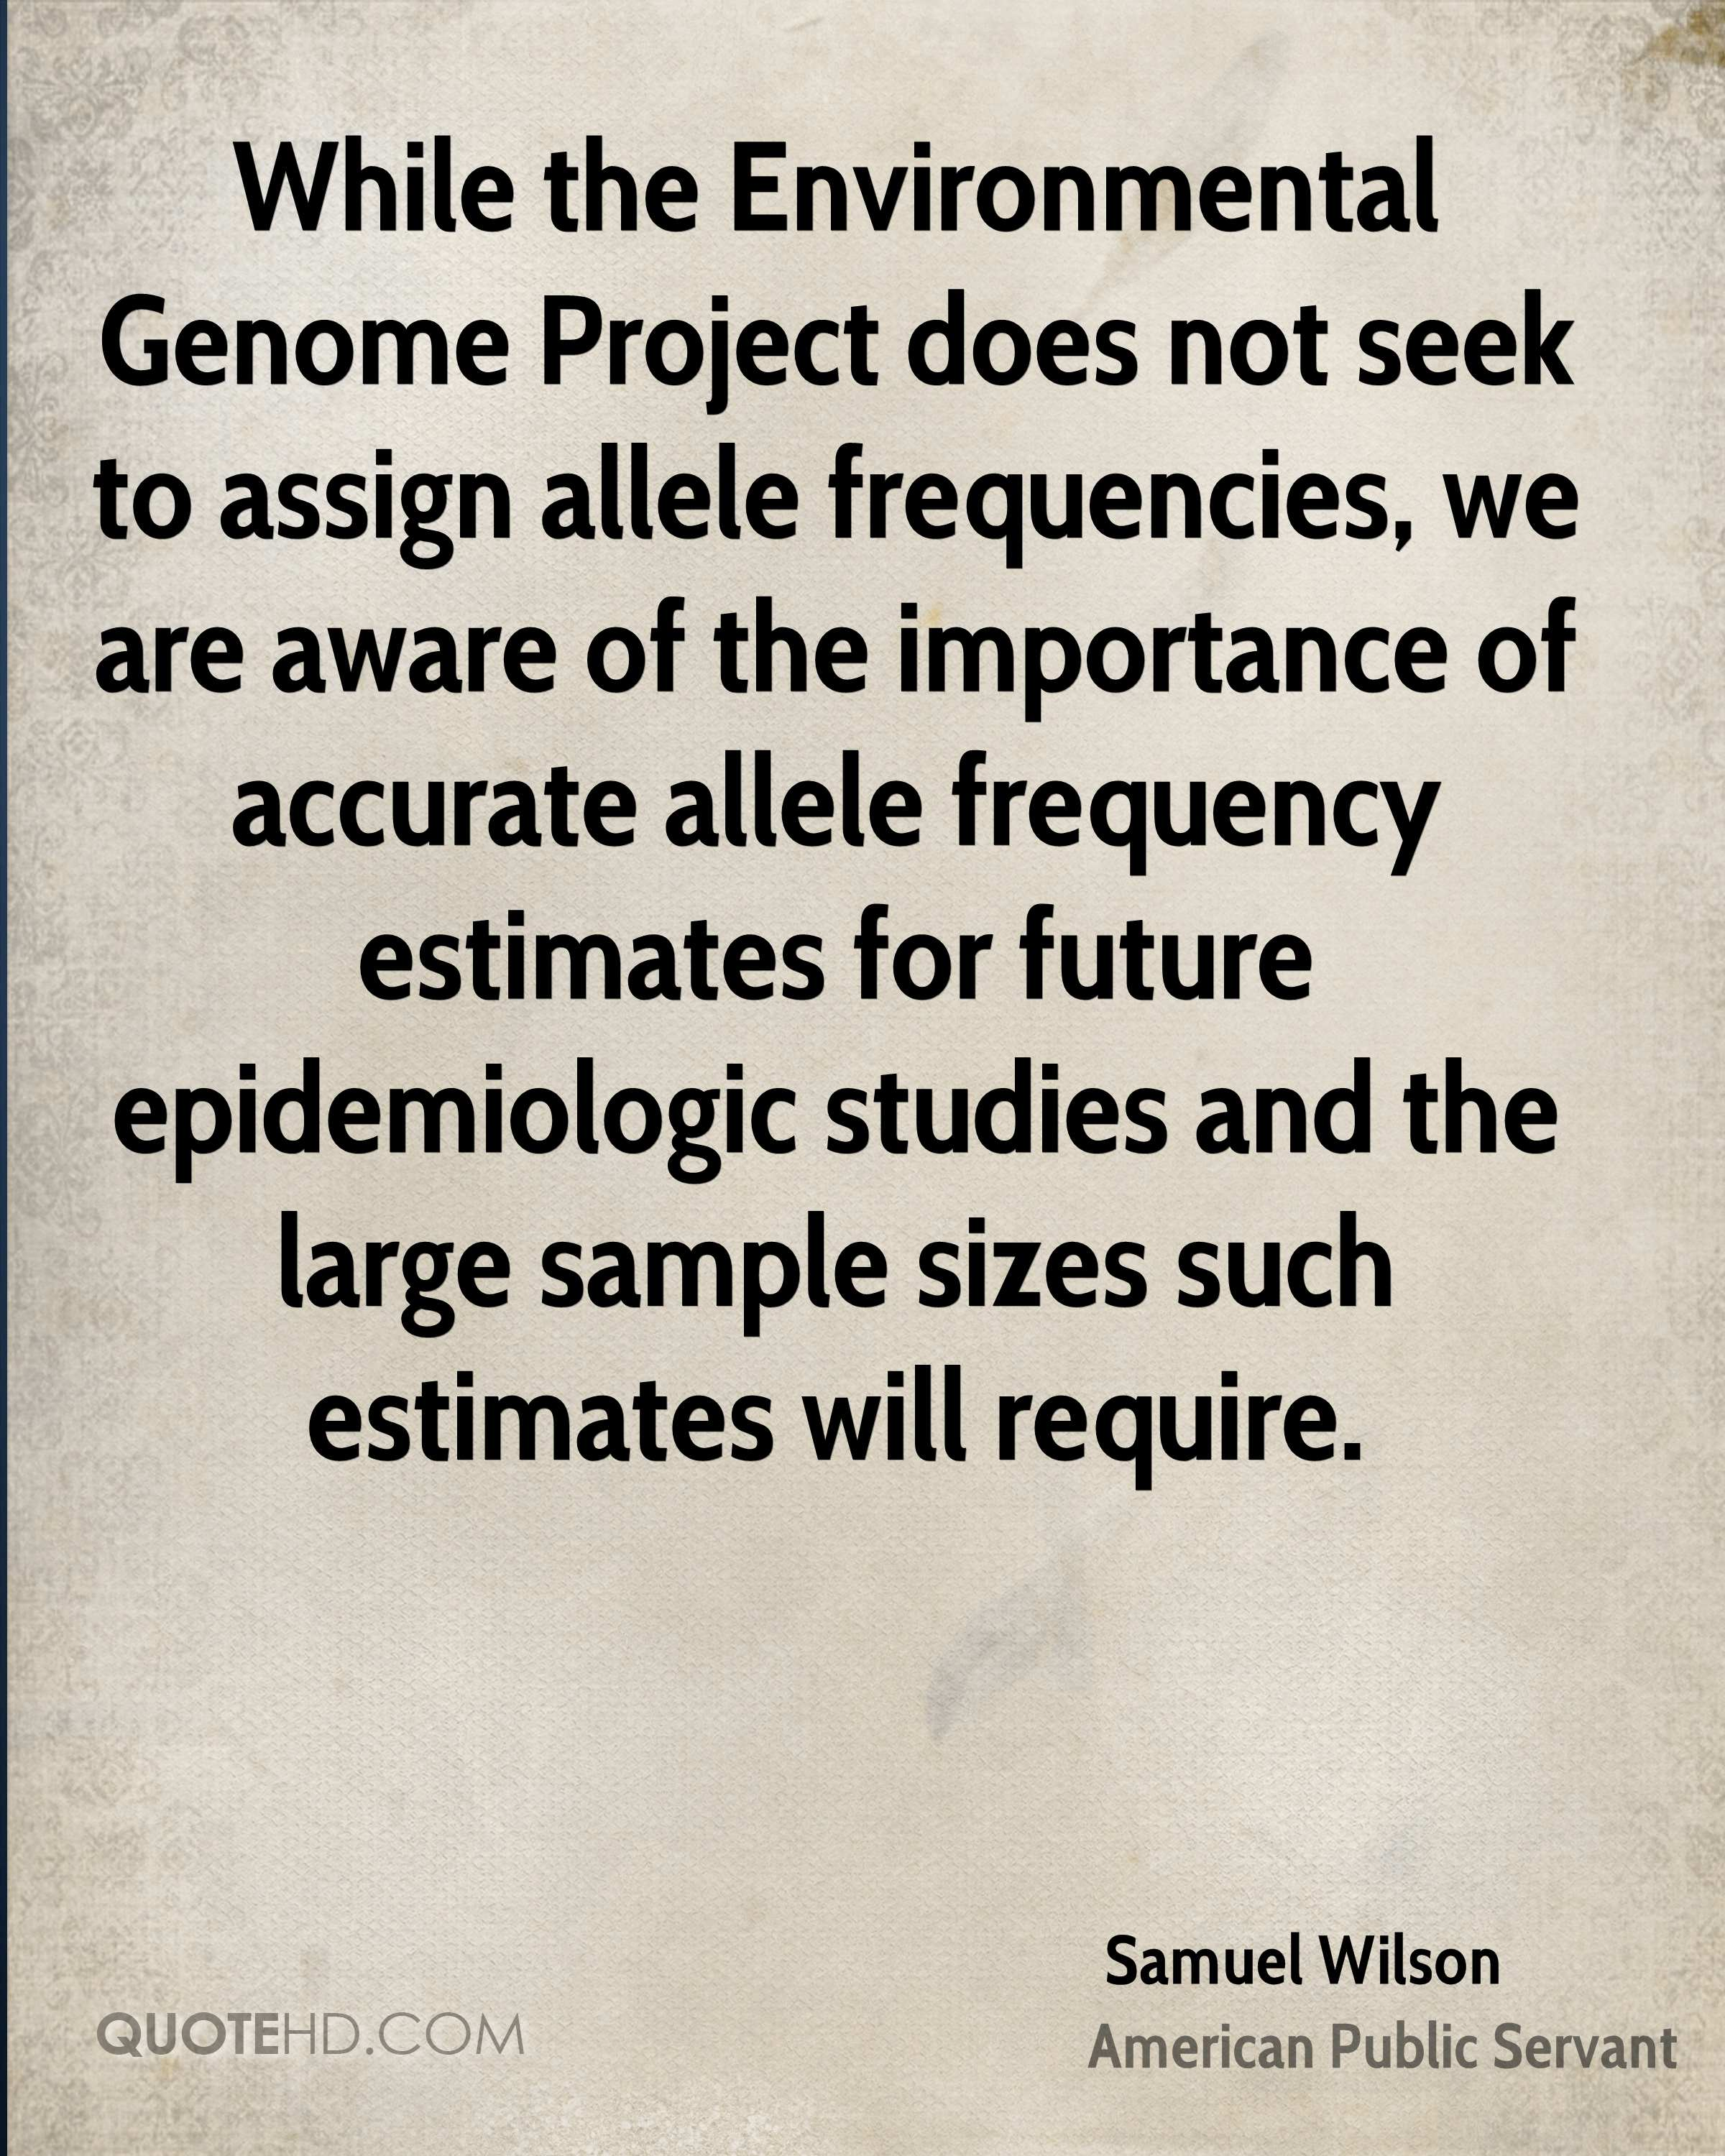 While the Environmental Genome Project does not seek to assign allele frequencies, we are aware of the importance of accurate allele frequency estimates for future epidemiologic studies and the large sample sizes such estimates will require.